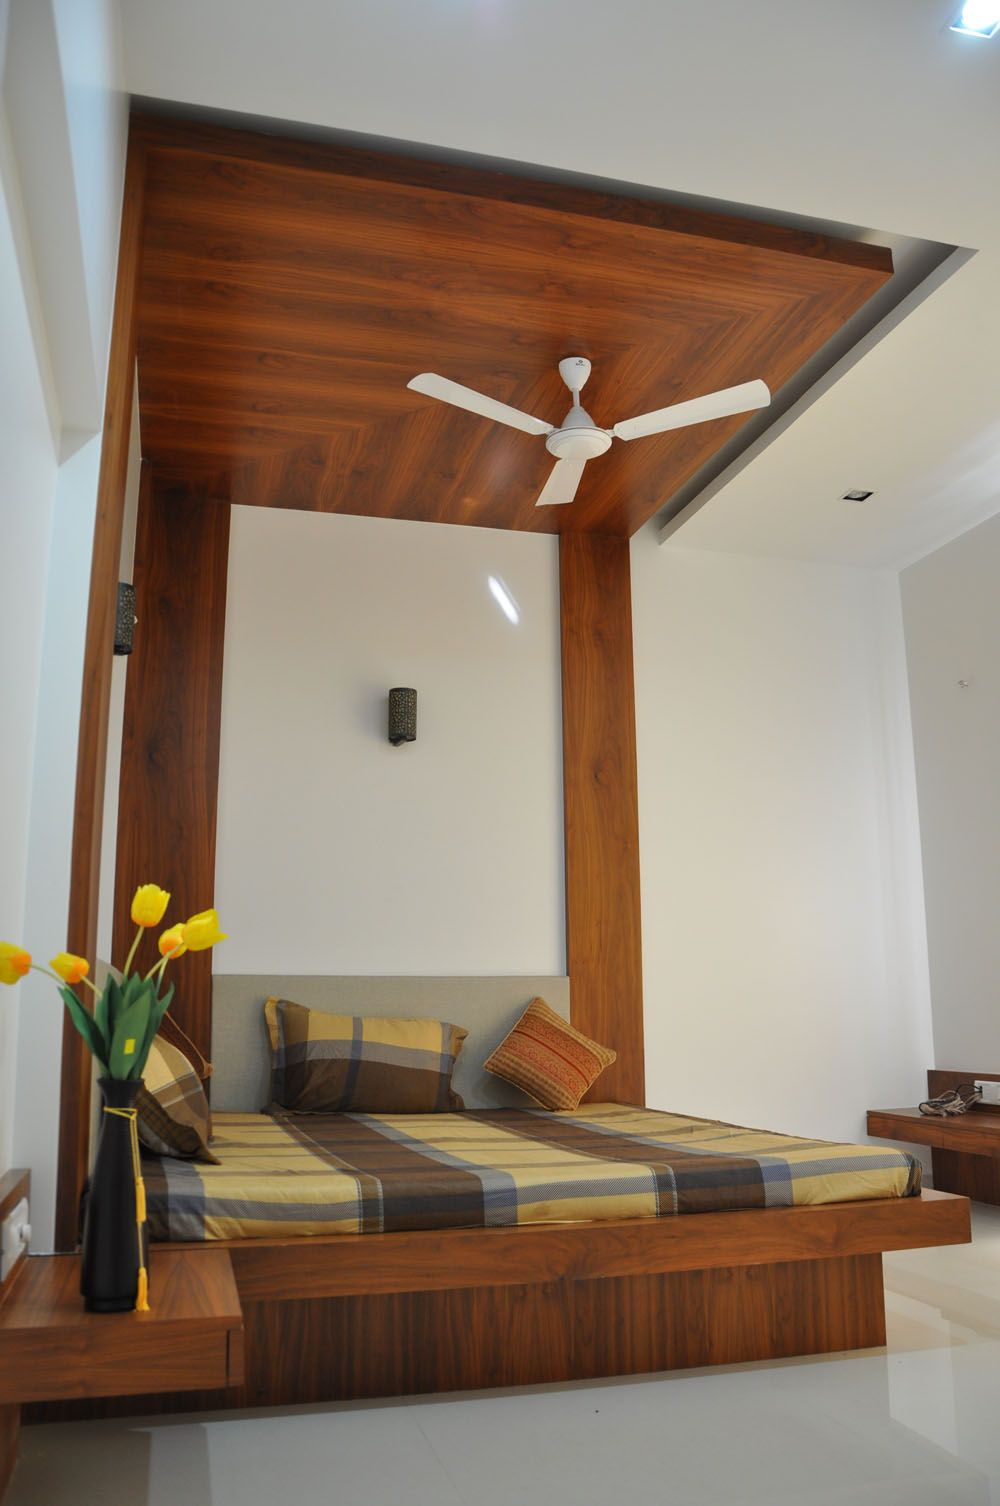 Architecture and interior design projects in india sheetalchhaya